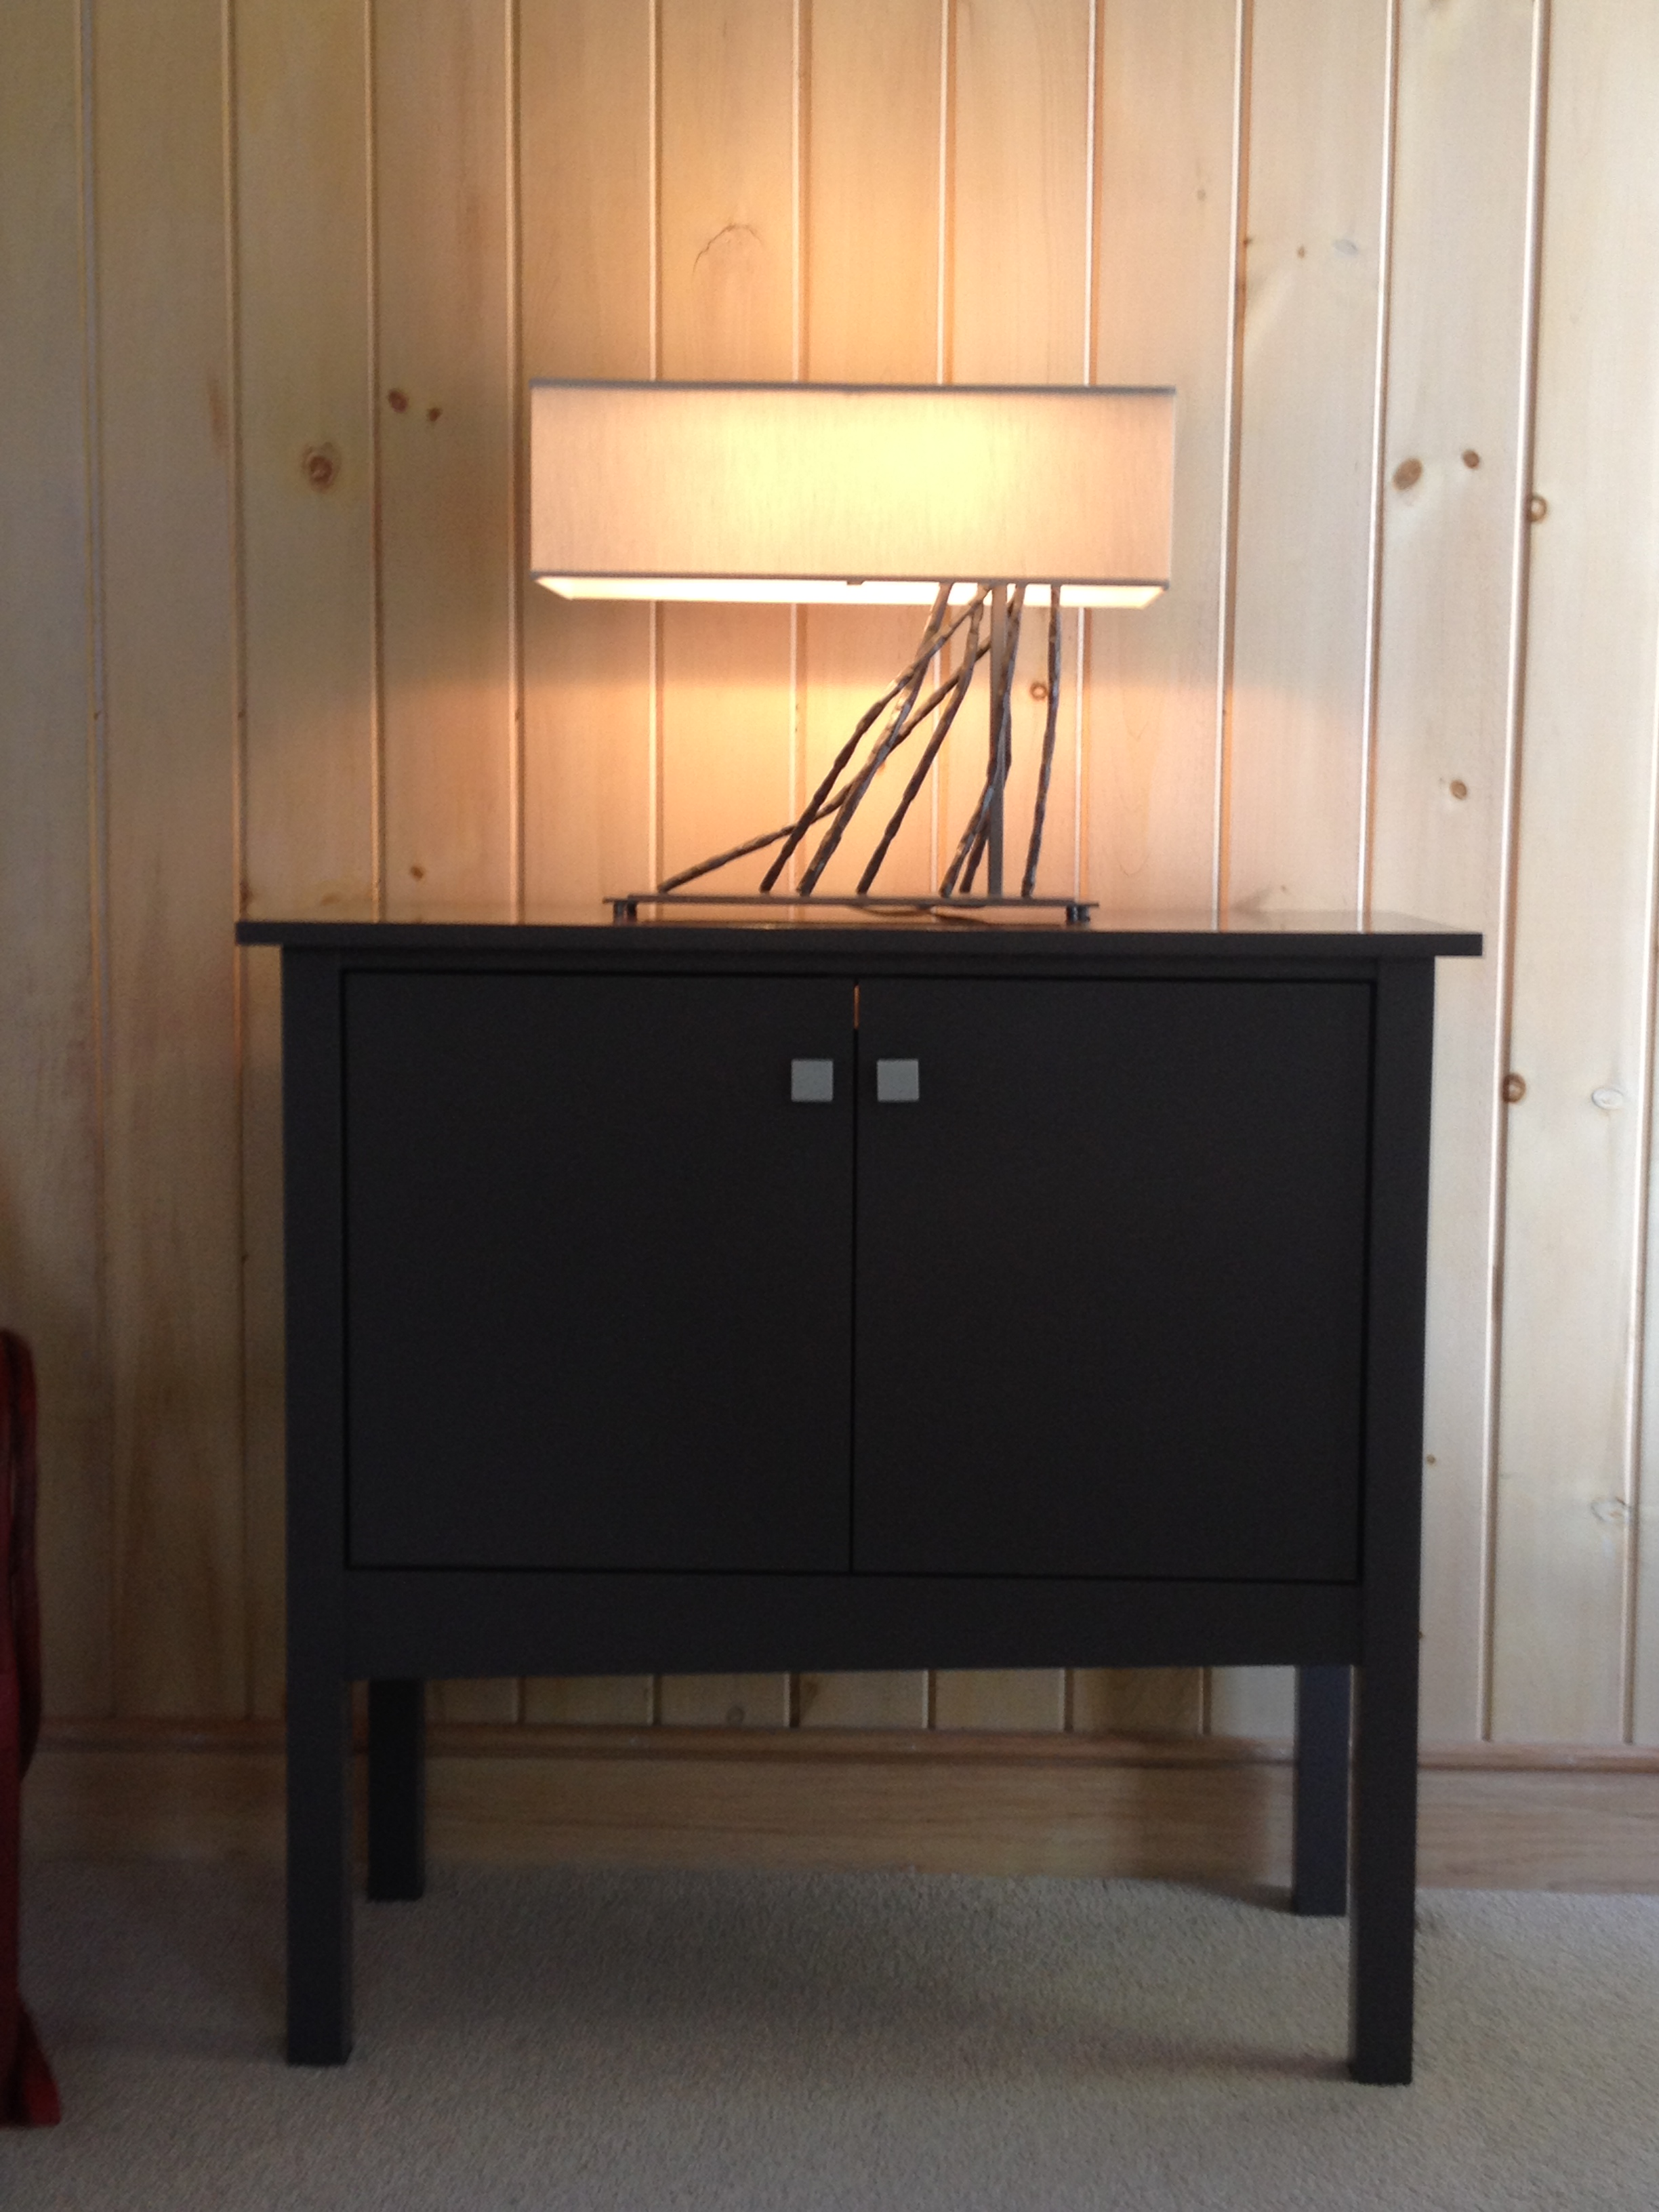 photo of storage cabinet and table lamp